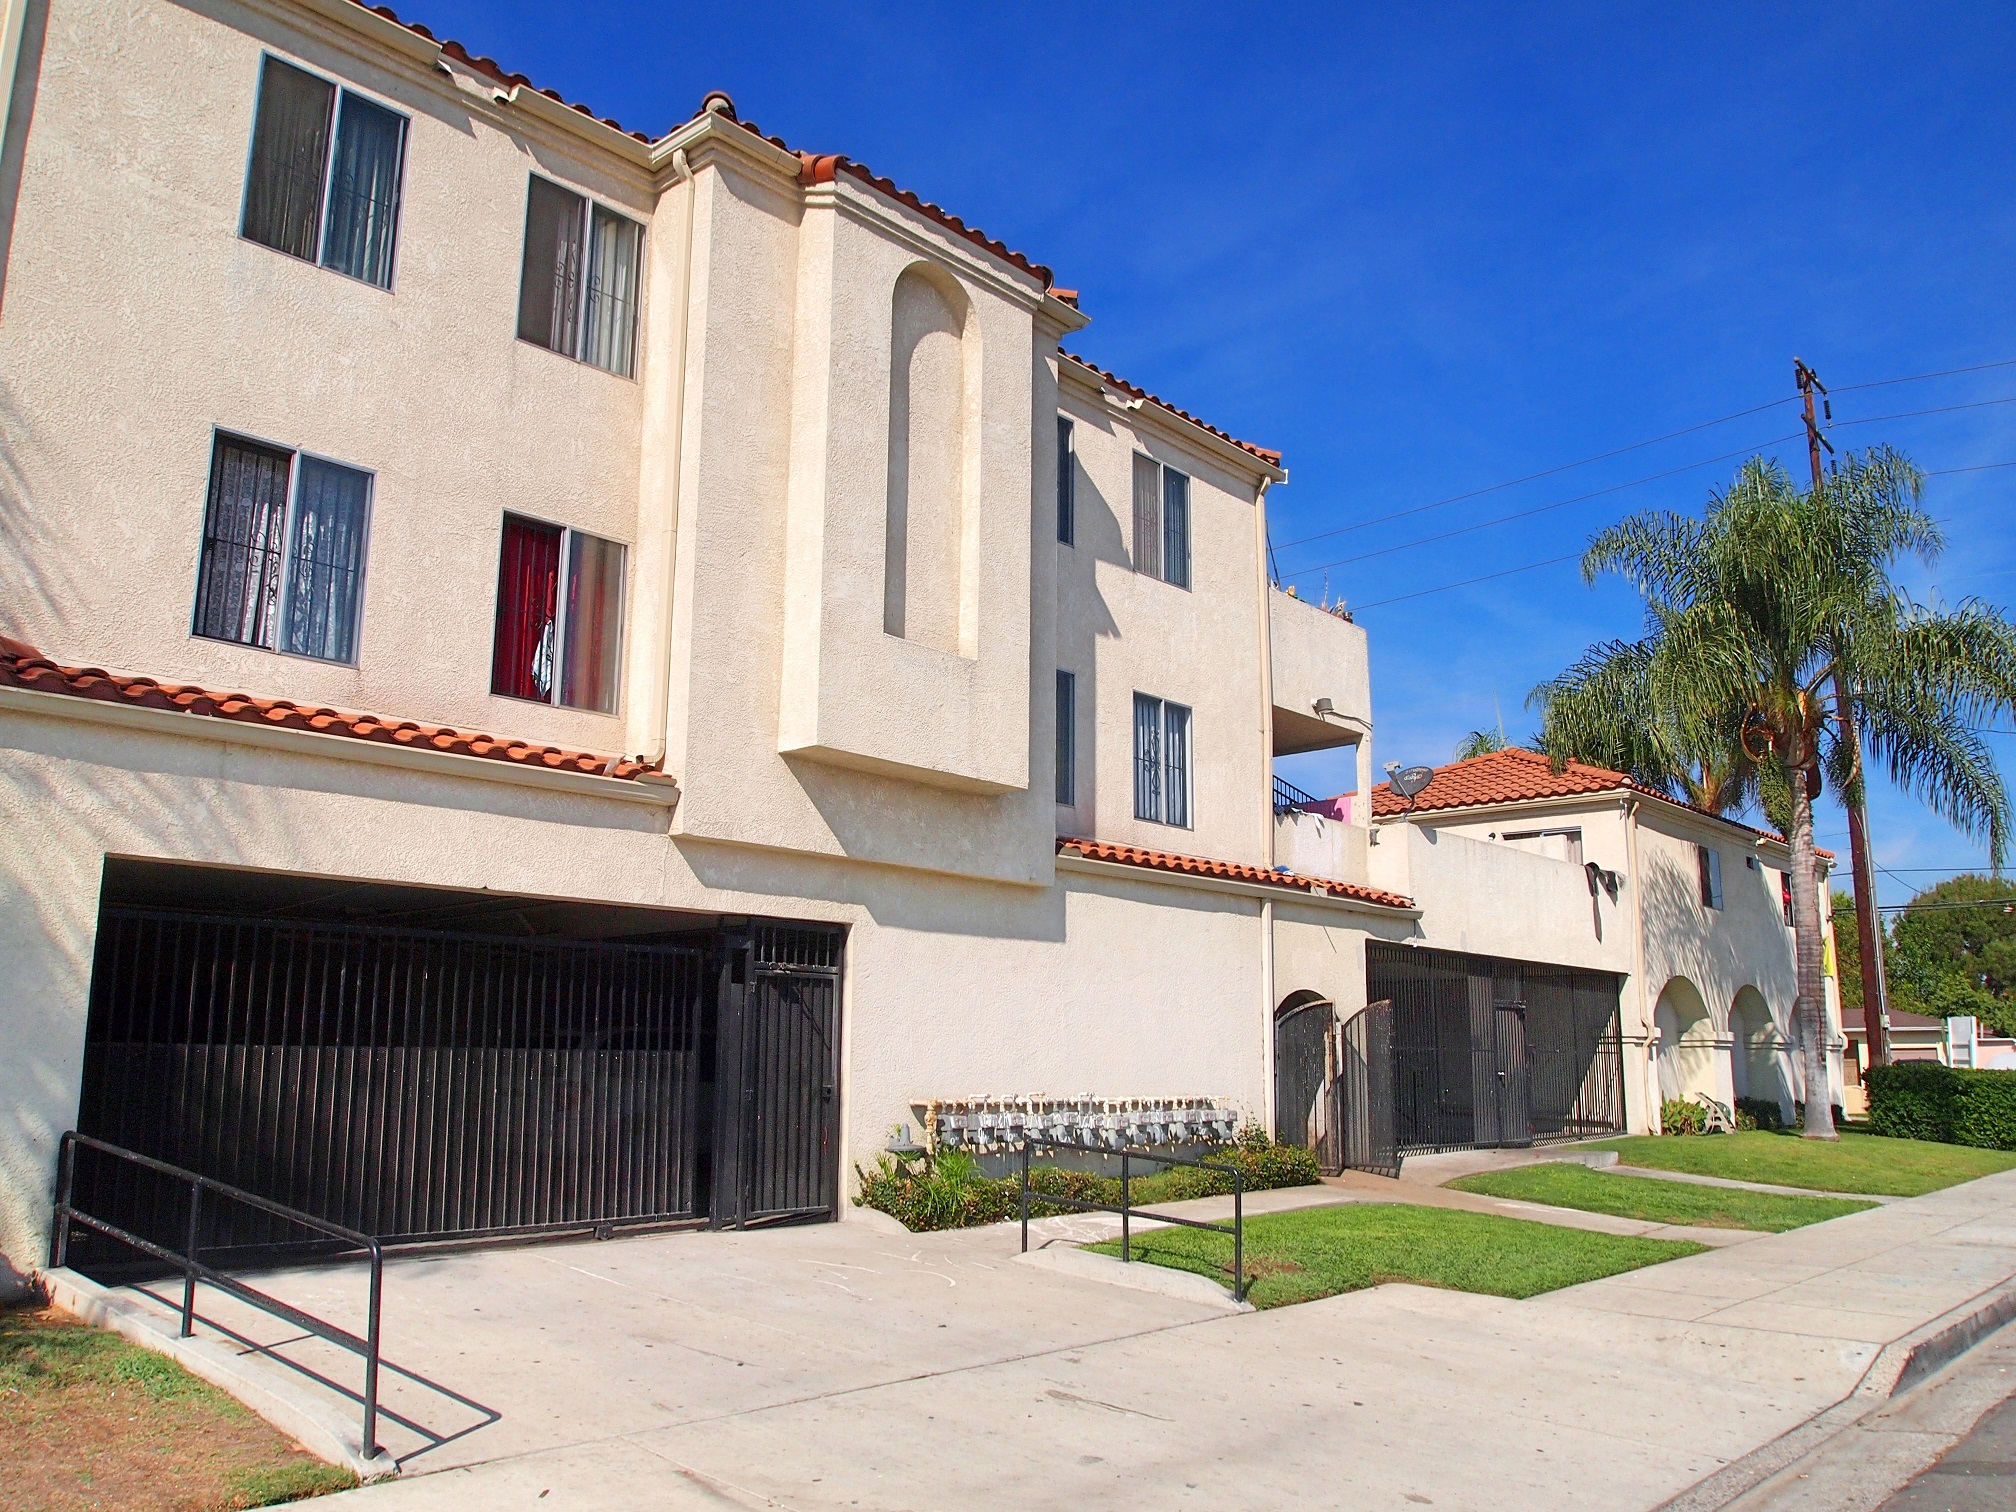 11 Multifamily Units Sold